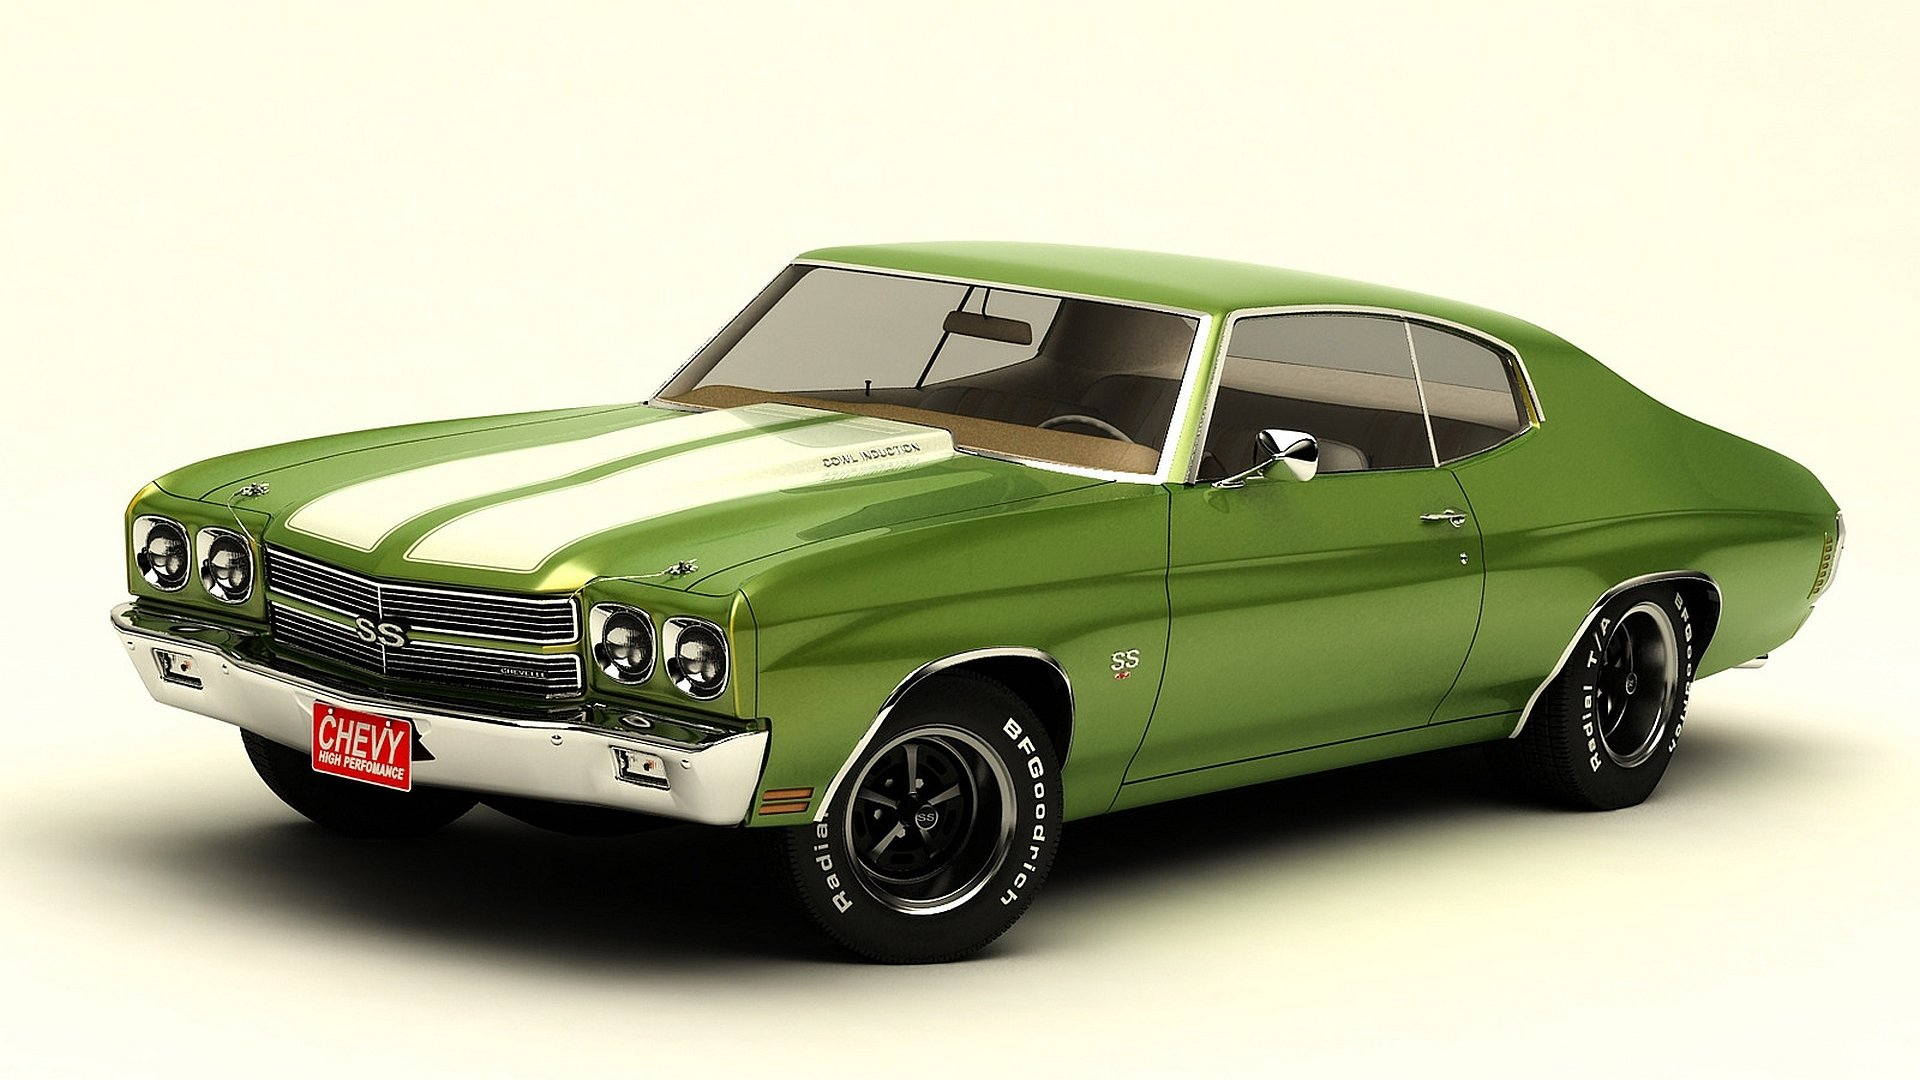 chevrolet chevelle full hd wallpaper and background